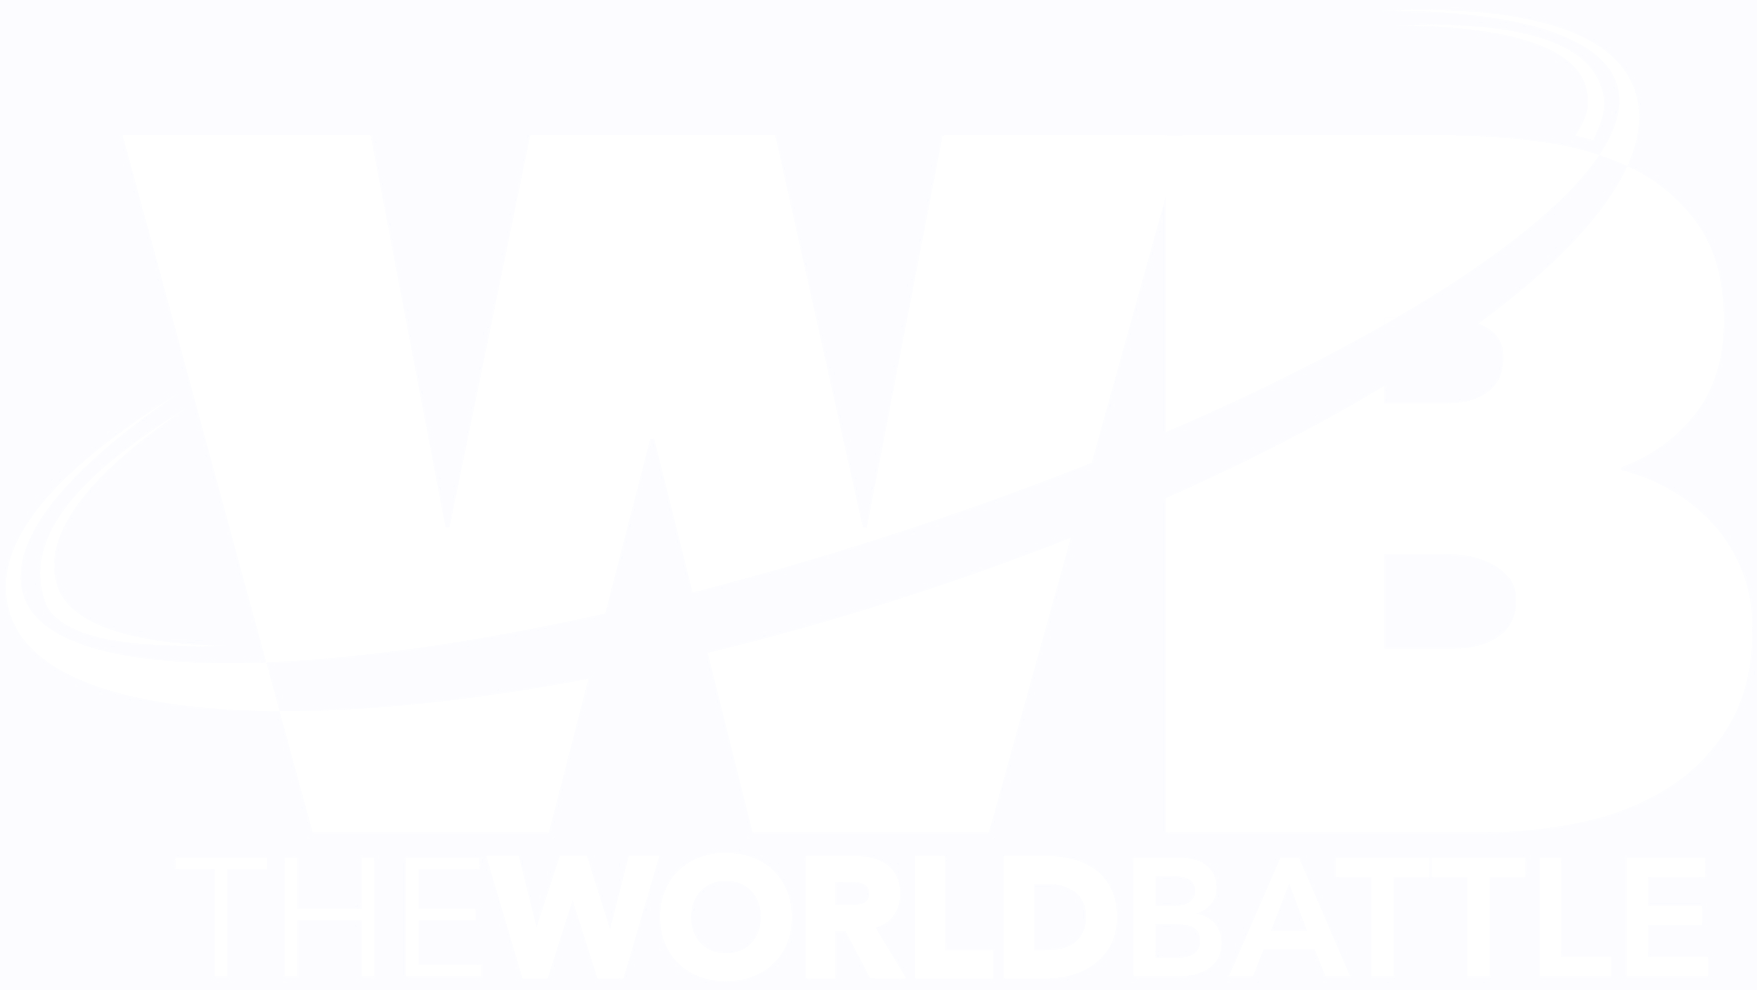 The World Battle 2019